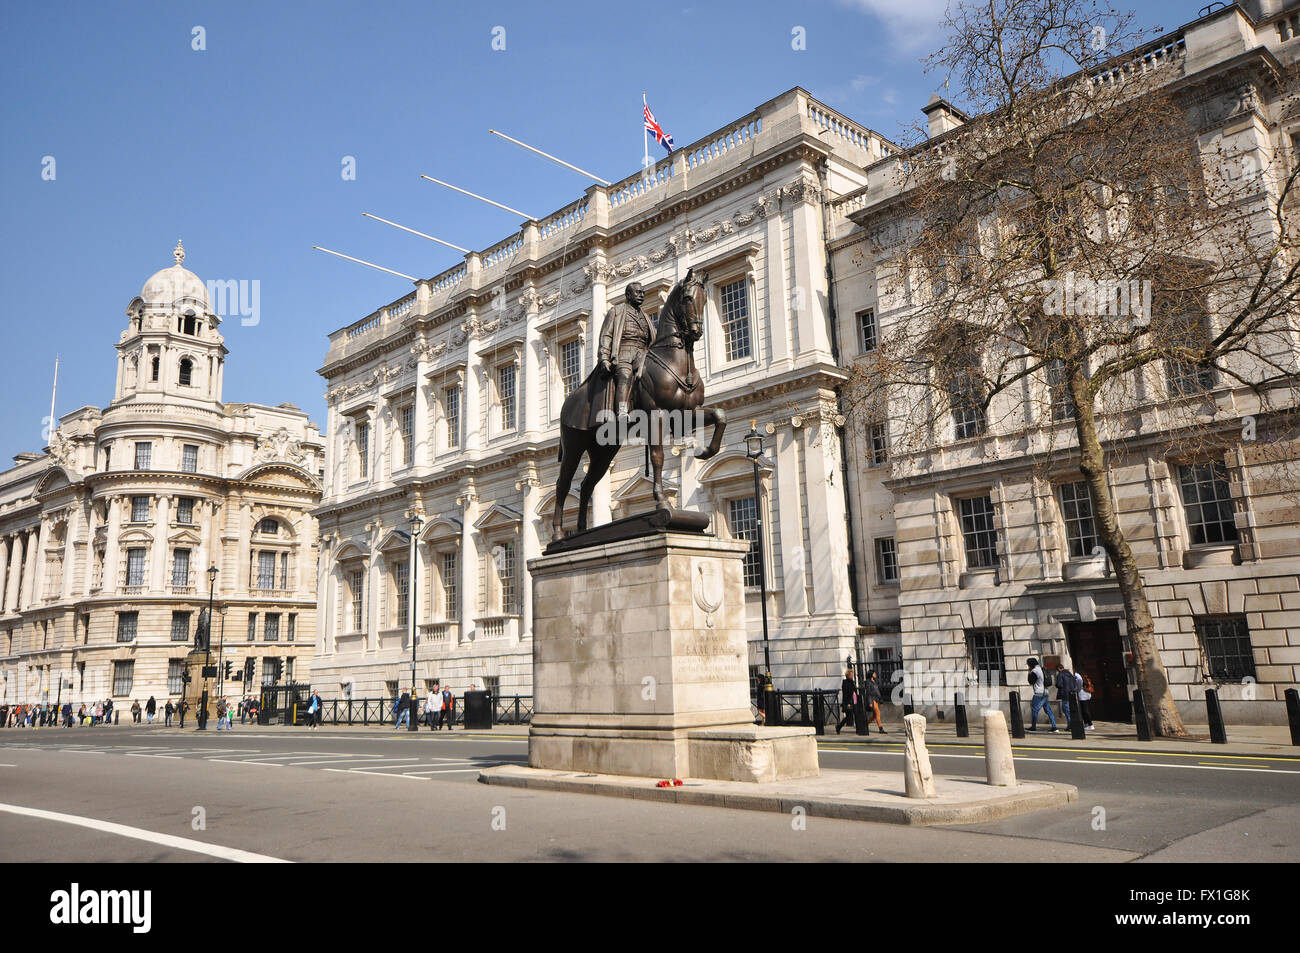 Whitehall, London. War Office to the left, Banqueting House centre rear and Earl Haig Memorial foreground. Space - Stock Image